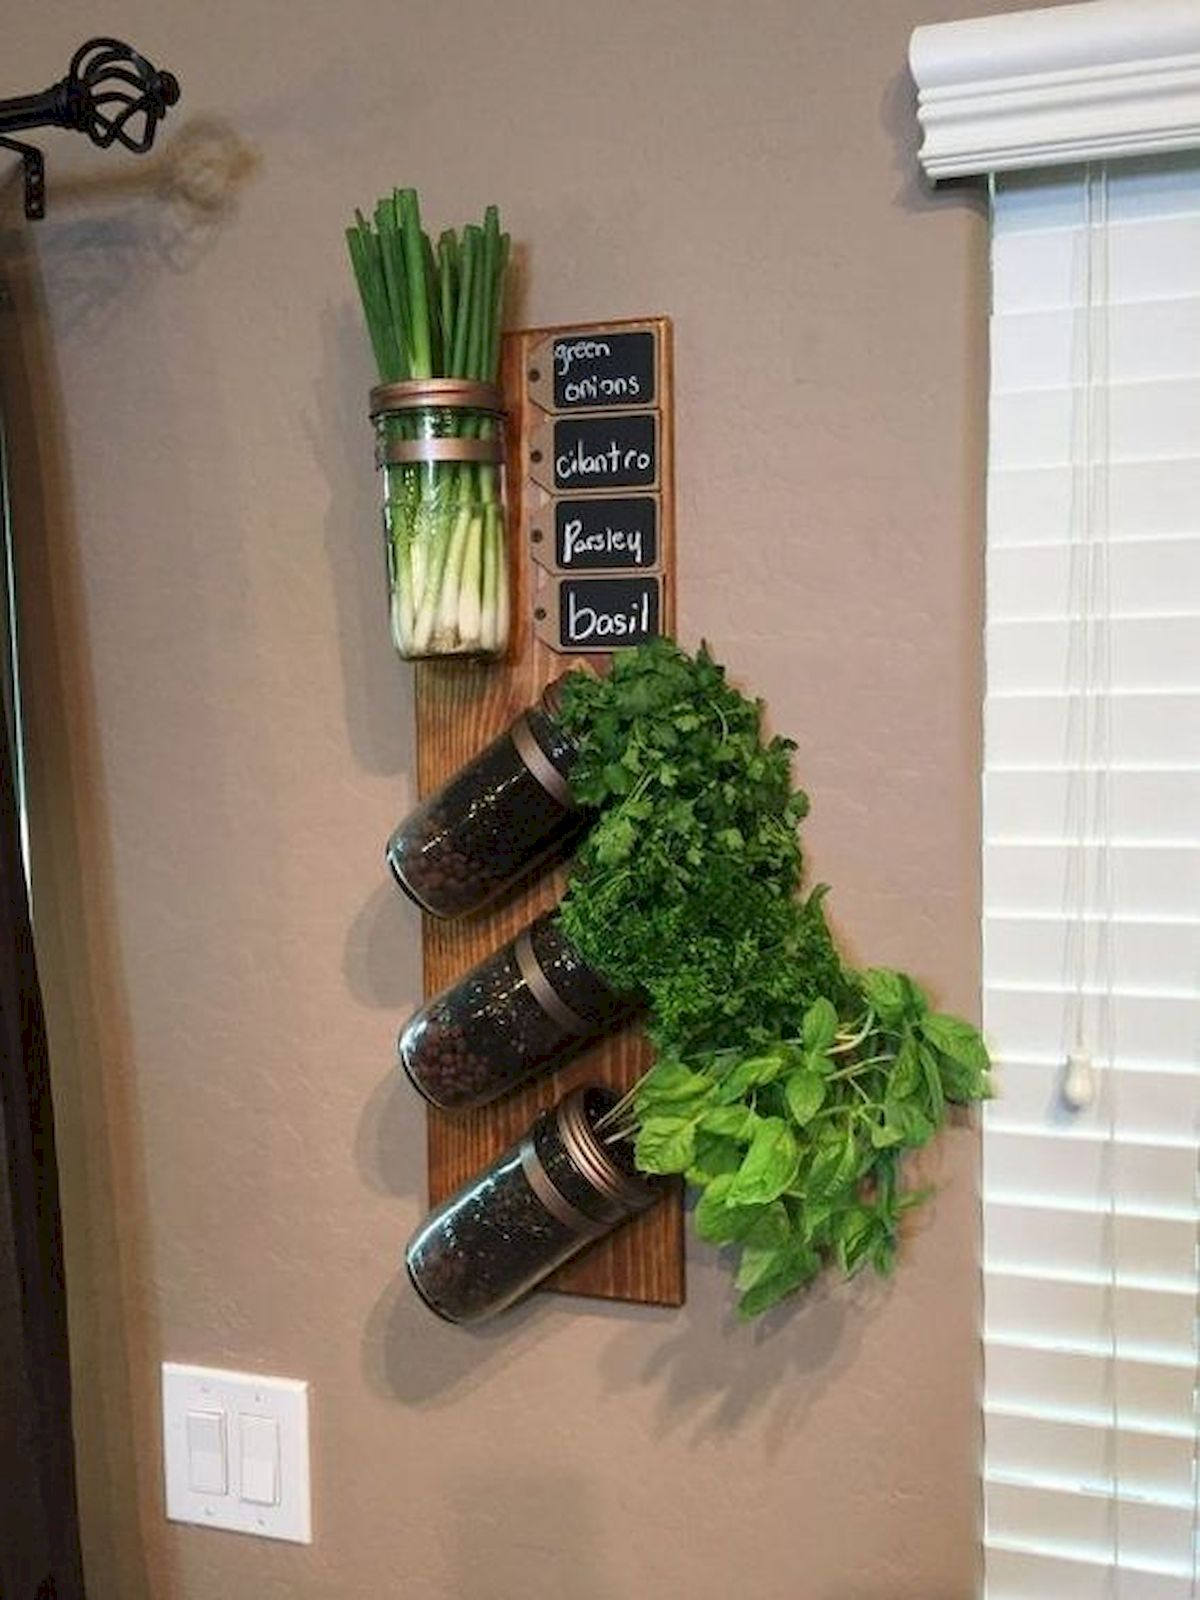 44 Fantastic Vertical Garden Ideas To Make Your Home Beautiful (11)